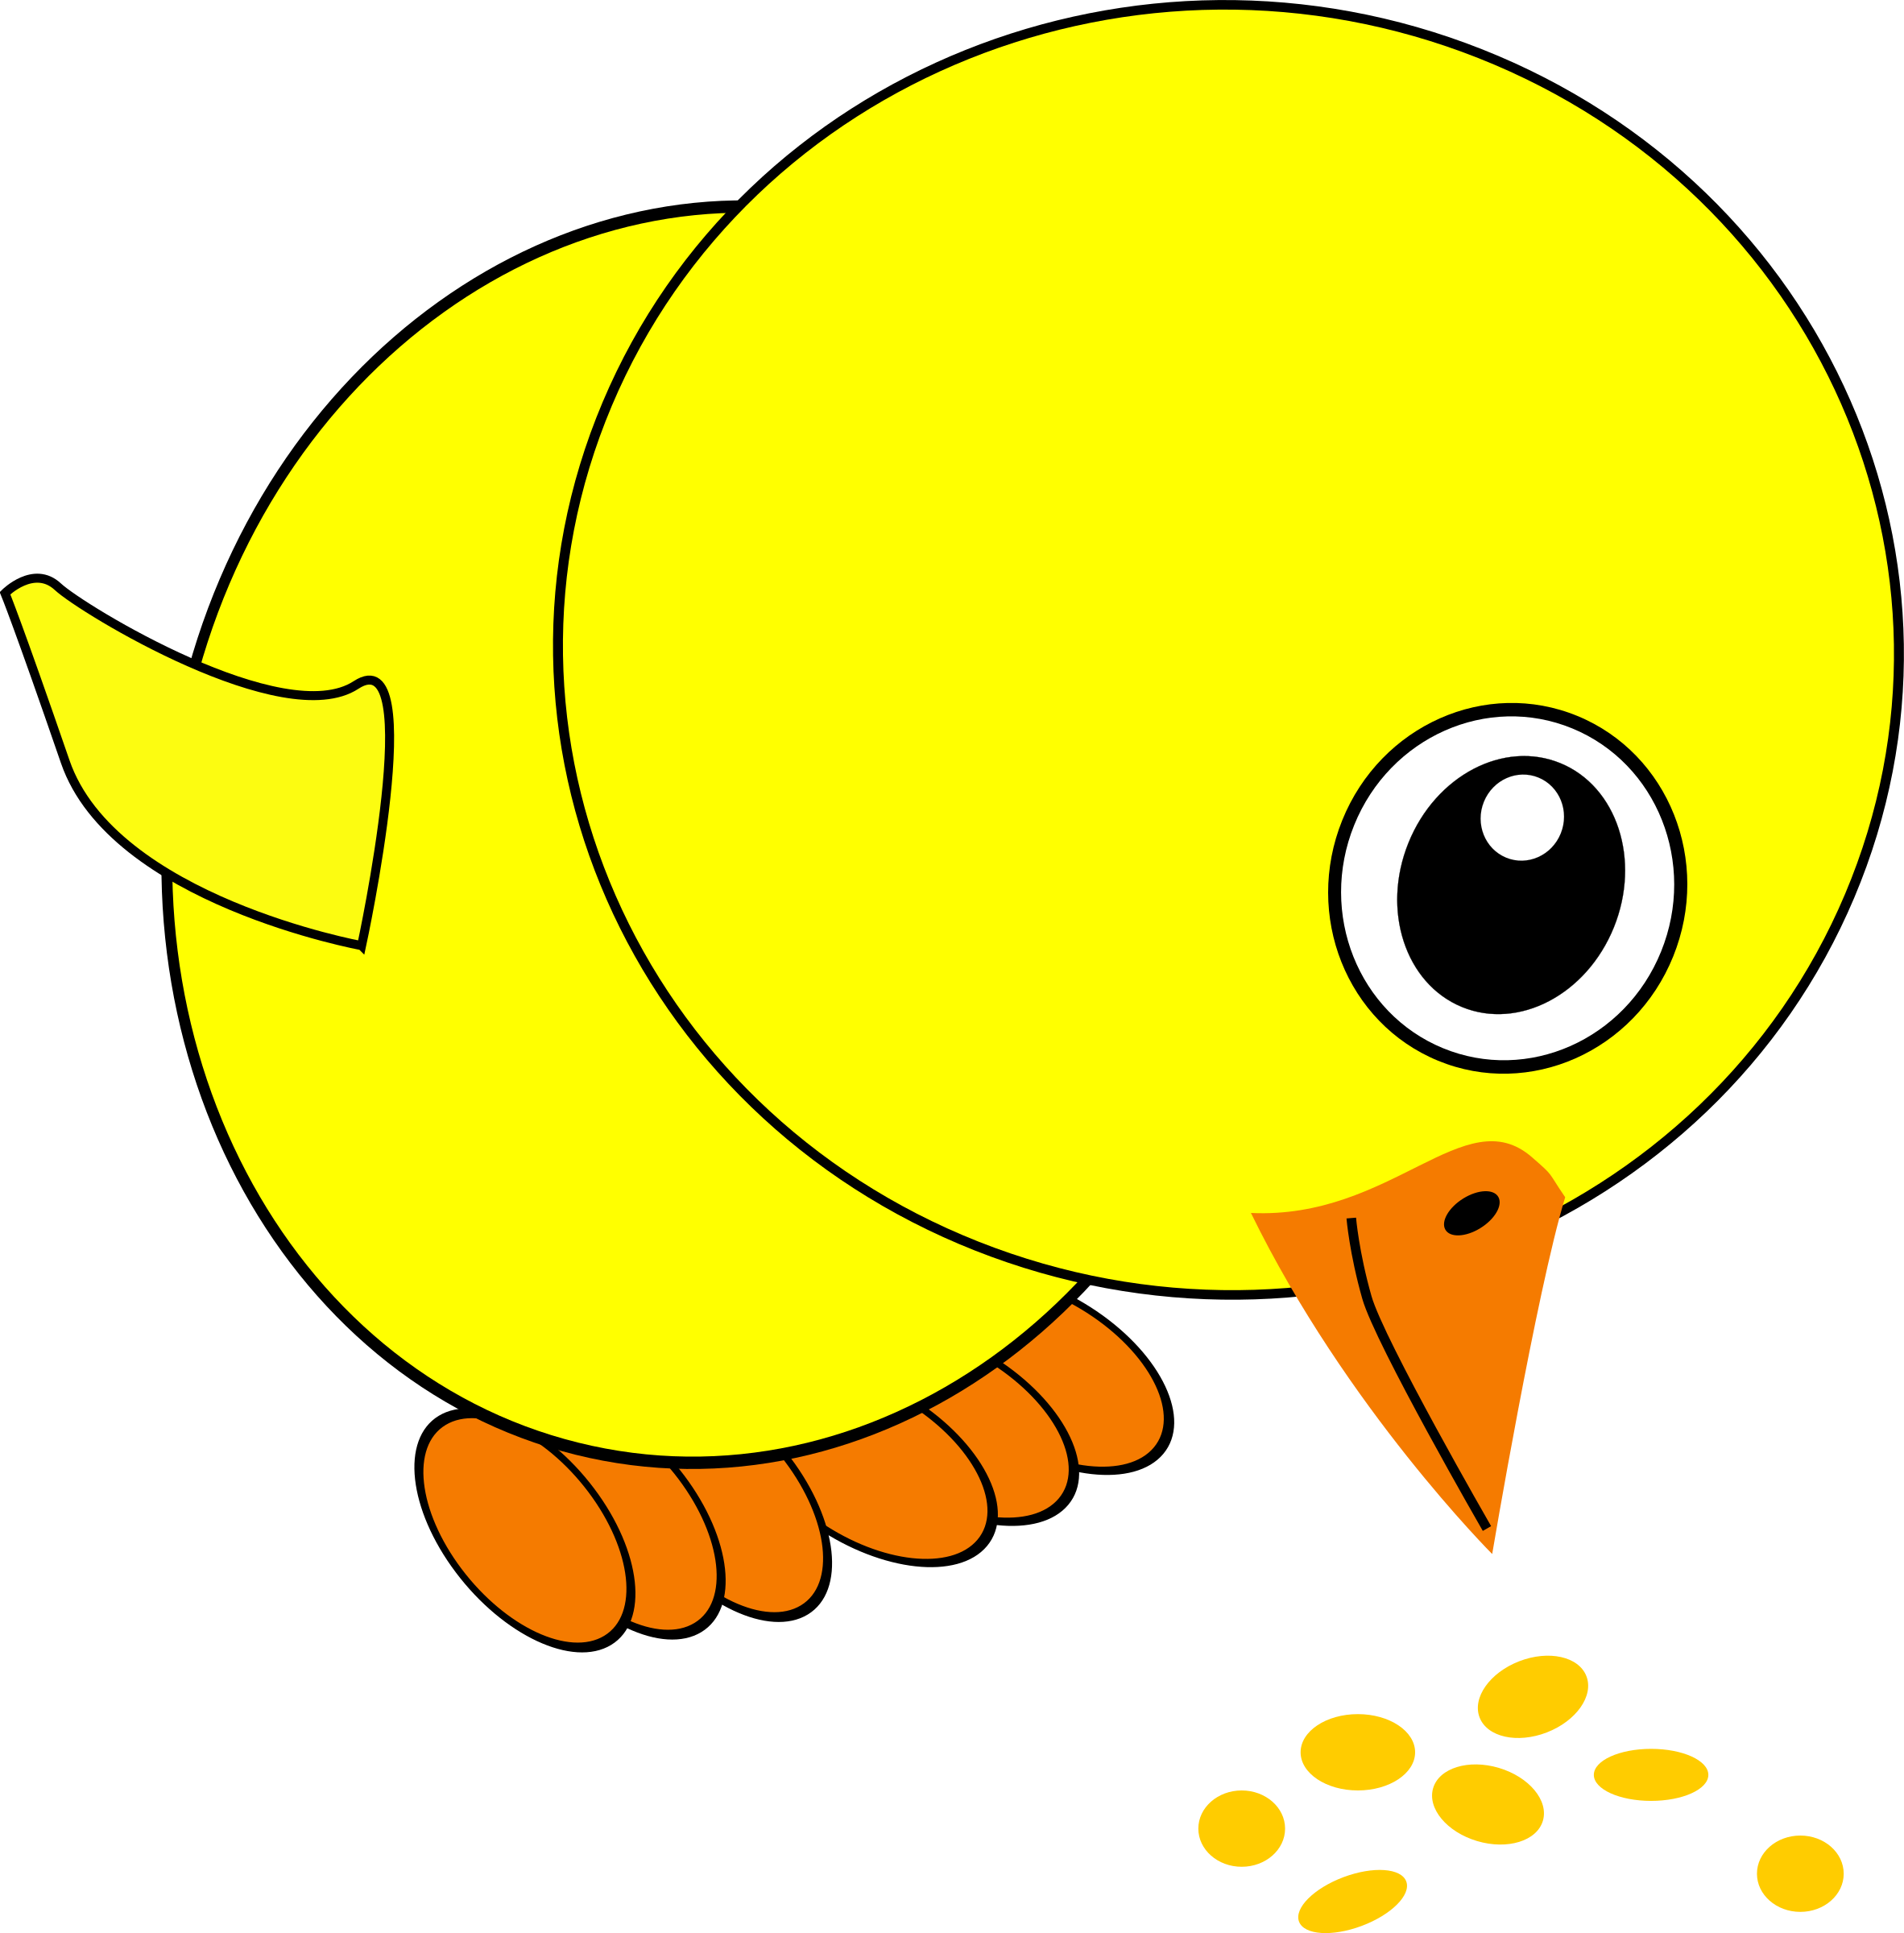 Clipart - Funny Chick Eating Bird Seed Cartoon